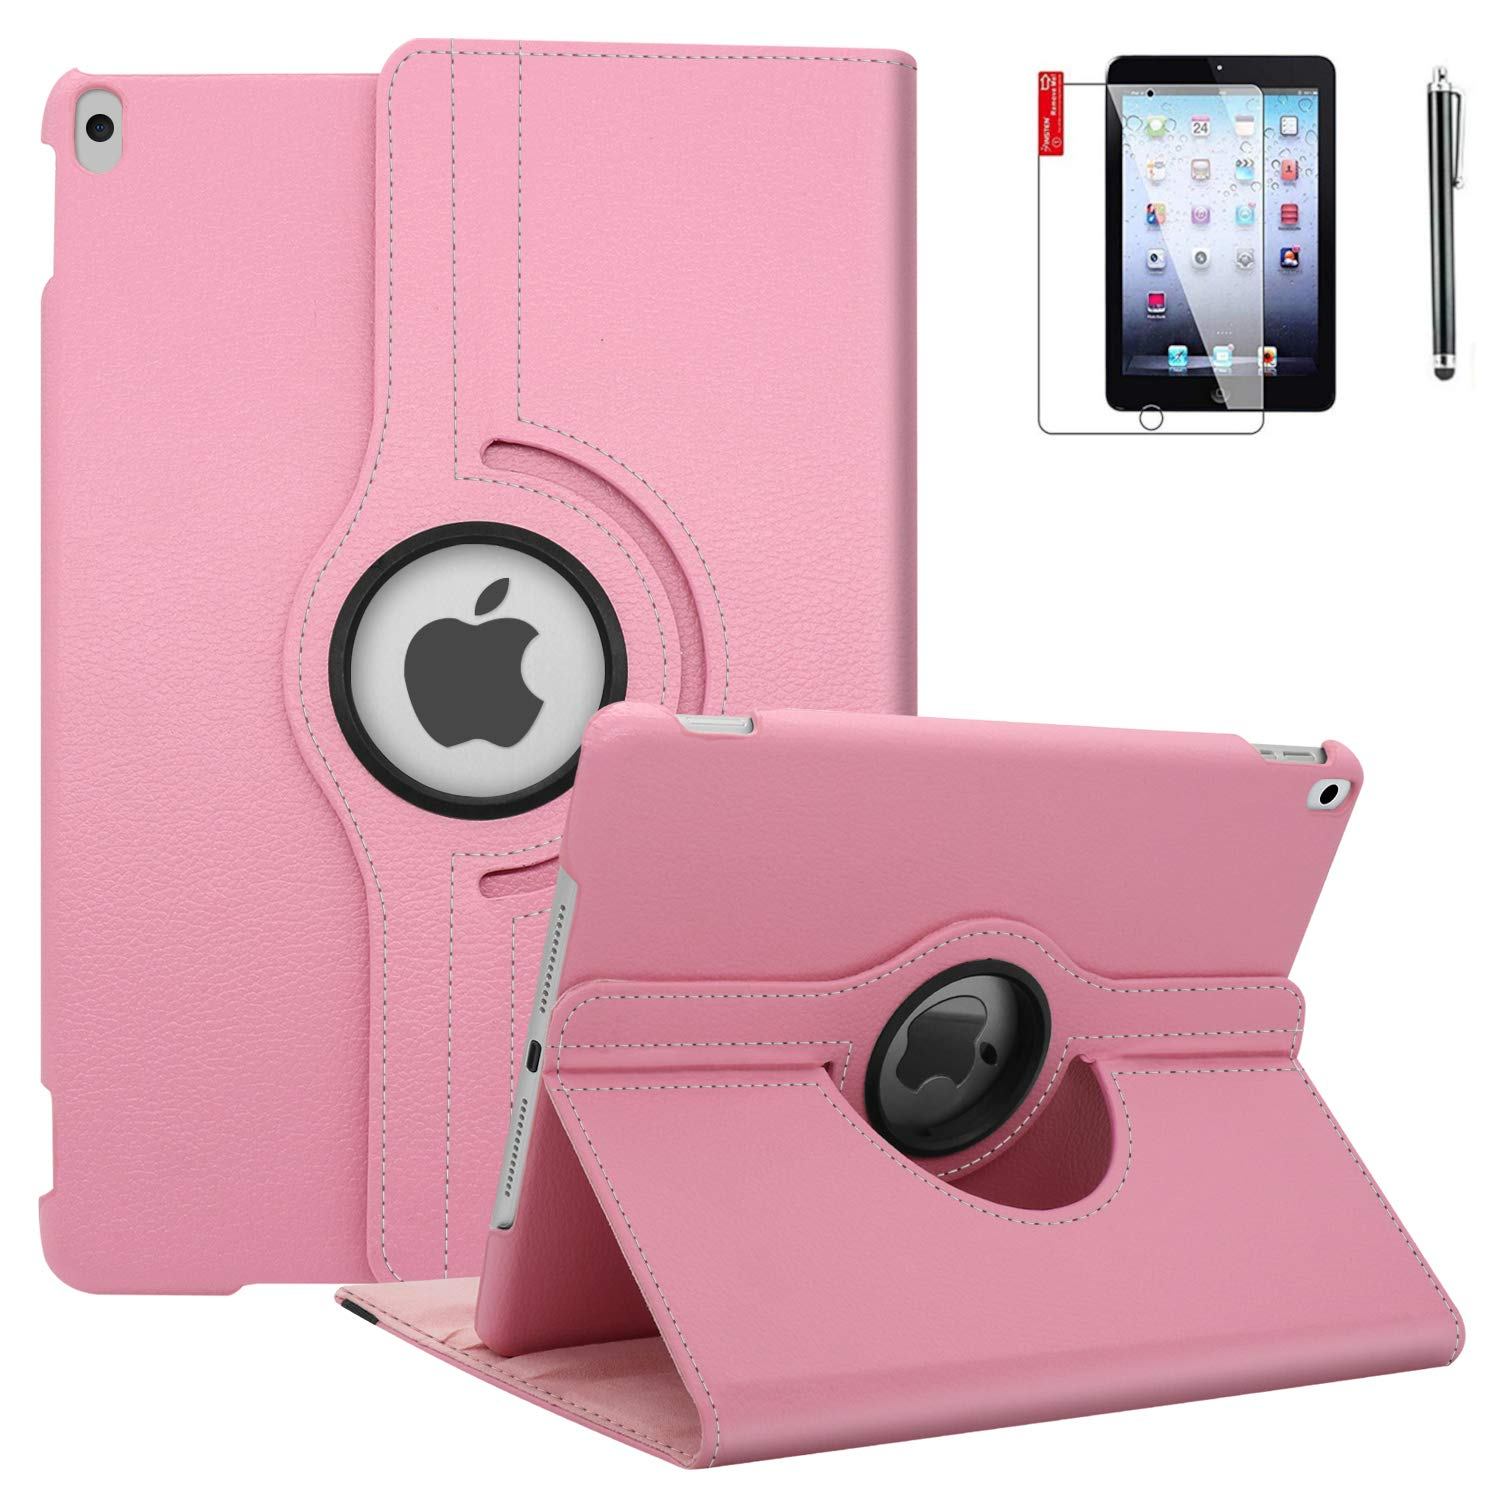 NEWQIANG iPad 6th Generation Cases with Bonus Screen Protector and Stylus - iPad 9.7 inch Air1 2018 2017 Case Cover - 360 Degree Rotating Stand, Auto Sleep Wake - A1822 A1823 (Light Pink)